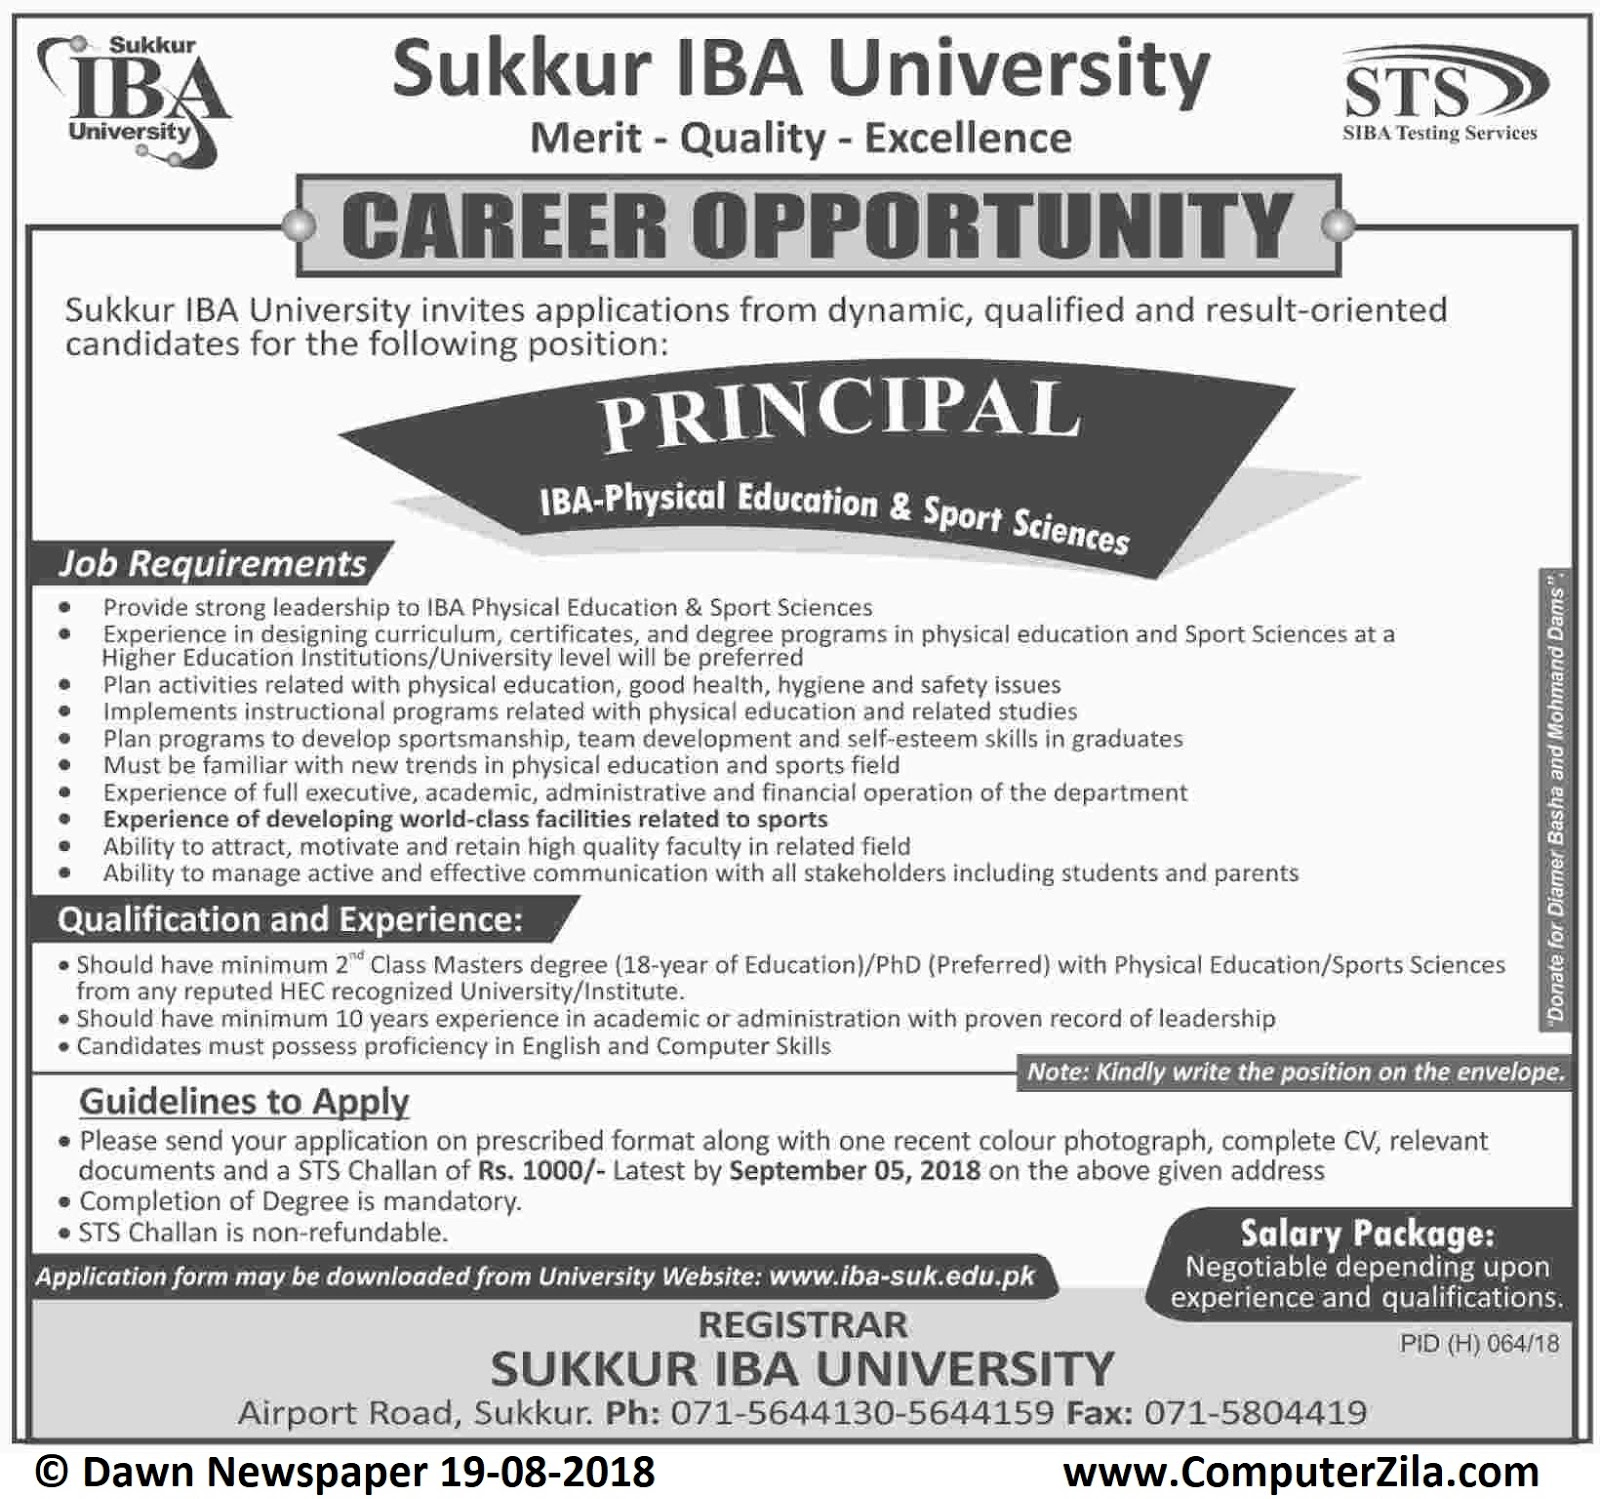 Career Opportunity at Sukkur IBA University